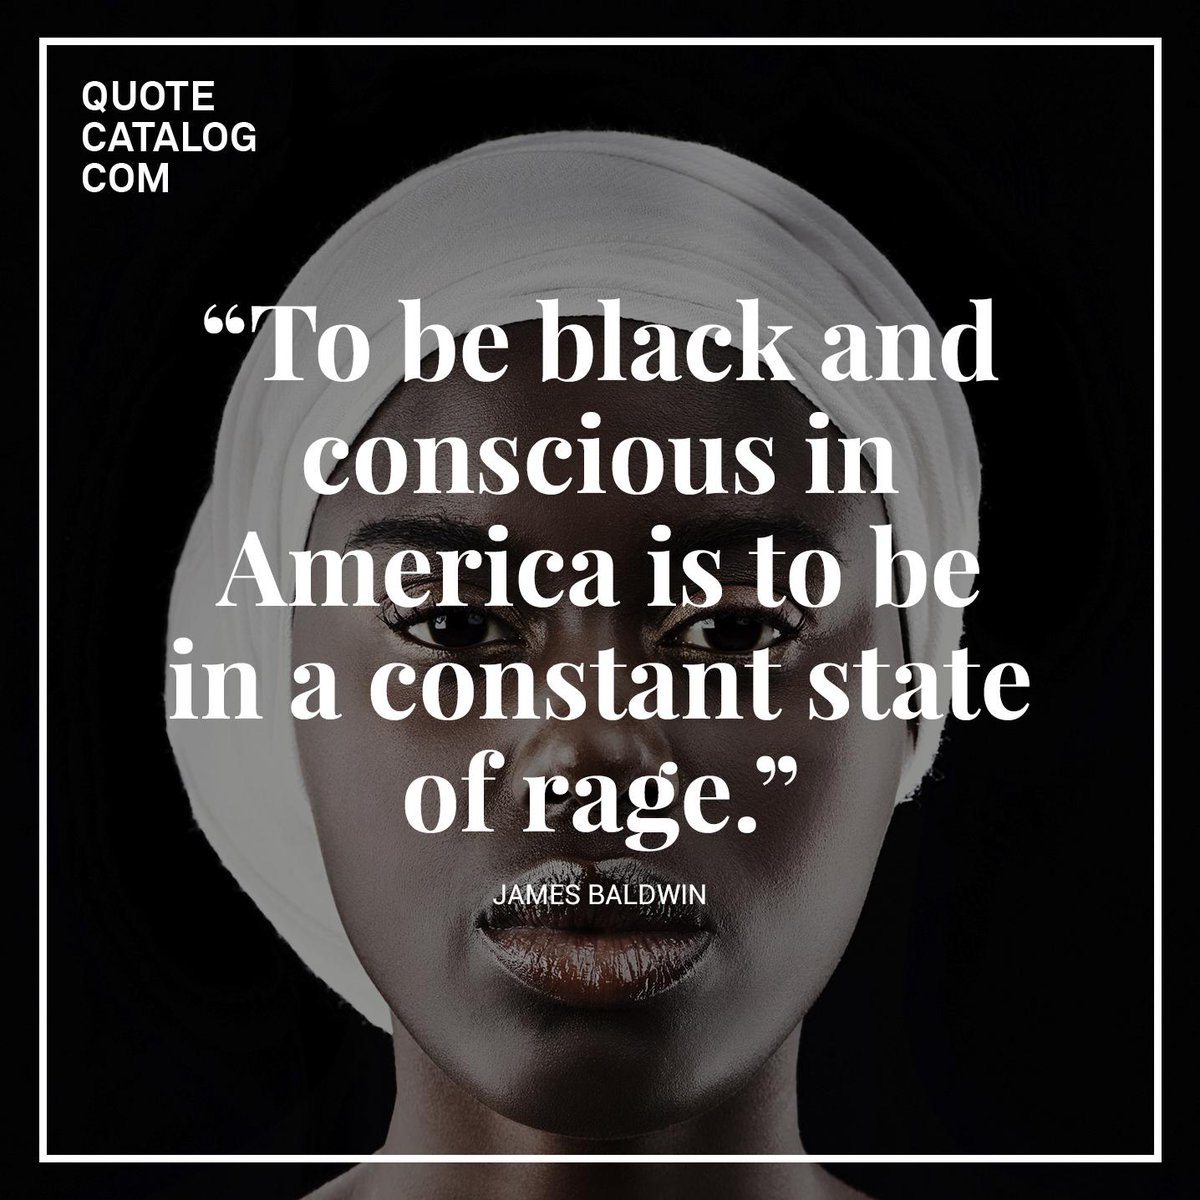 Quote Catalog On Twitter To Be Black And Conscious In America Is